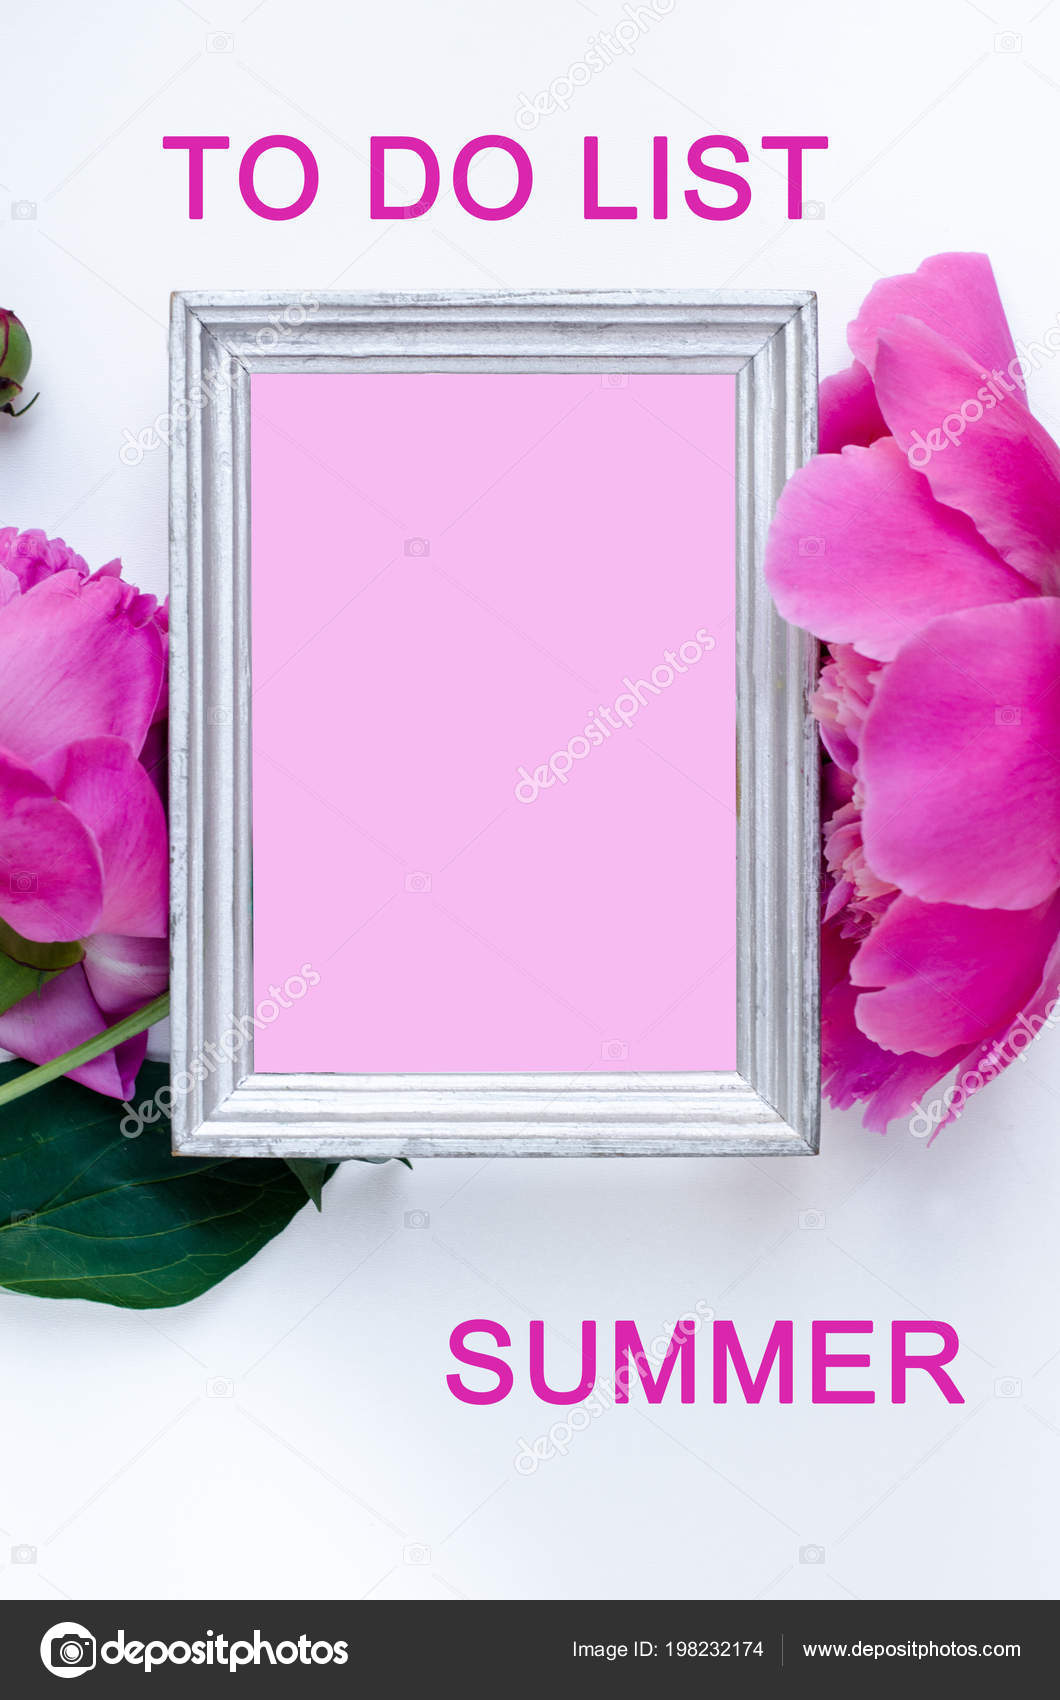 List peony flower frame flat lay nature concept white background to do list peony flower in frame flat lay nature concept on white background with copy space for greeting message creative layout mothers day and spring mightylinksfo